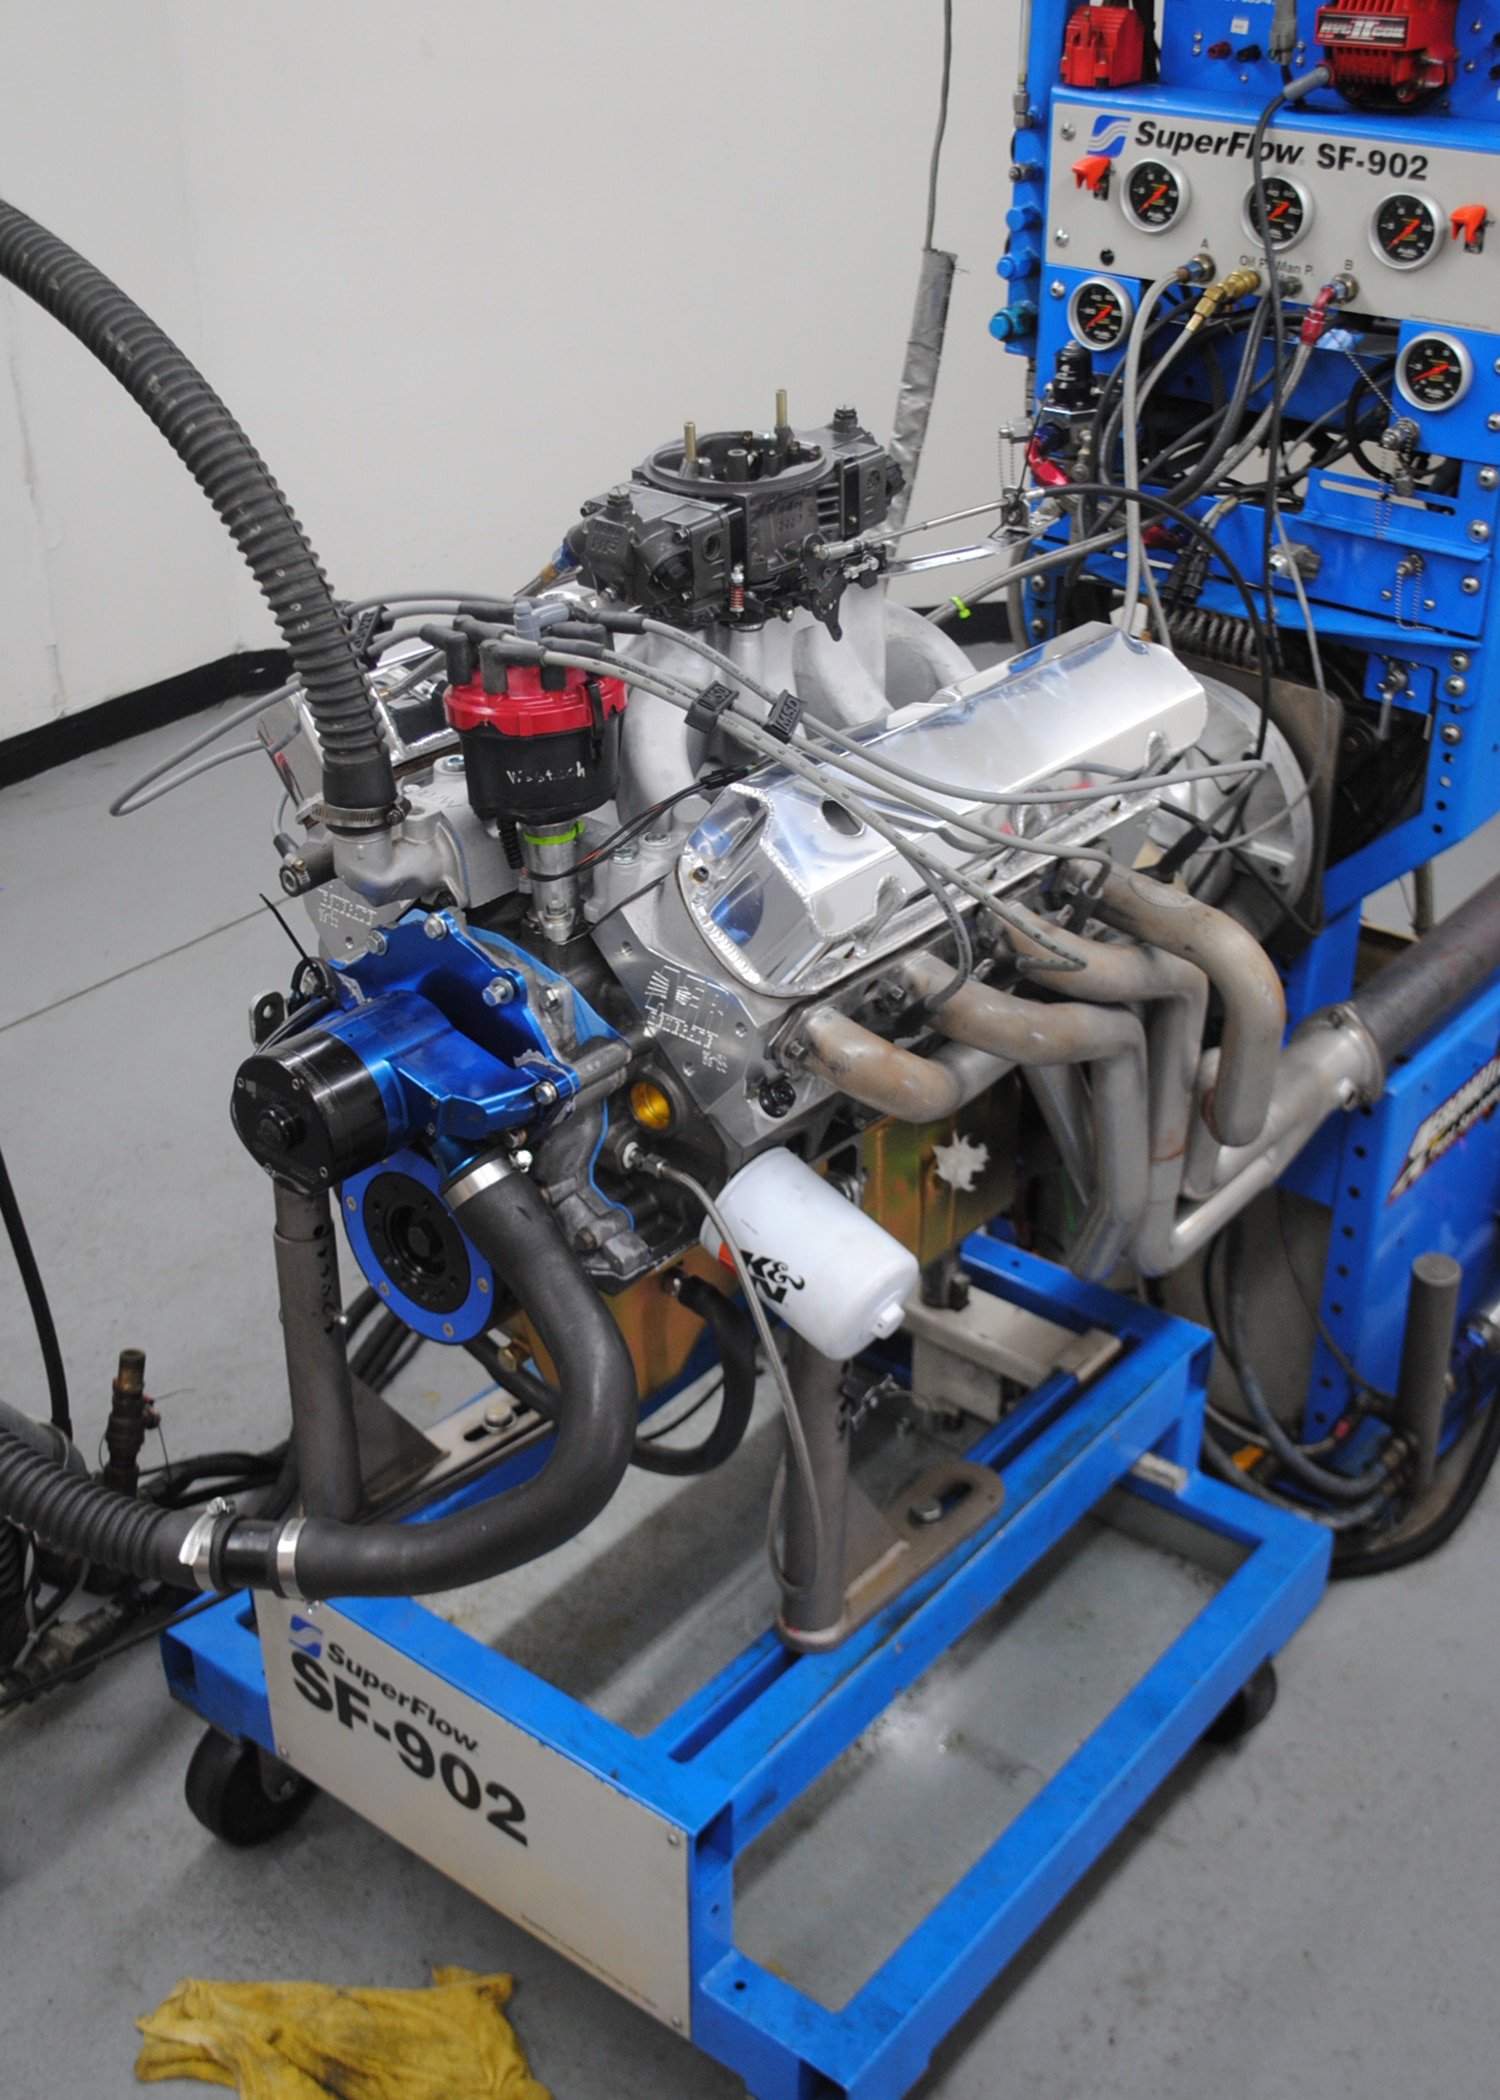 Holley Ultra Hp Carb